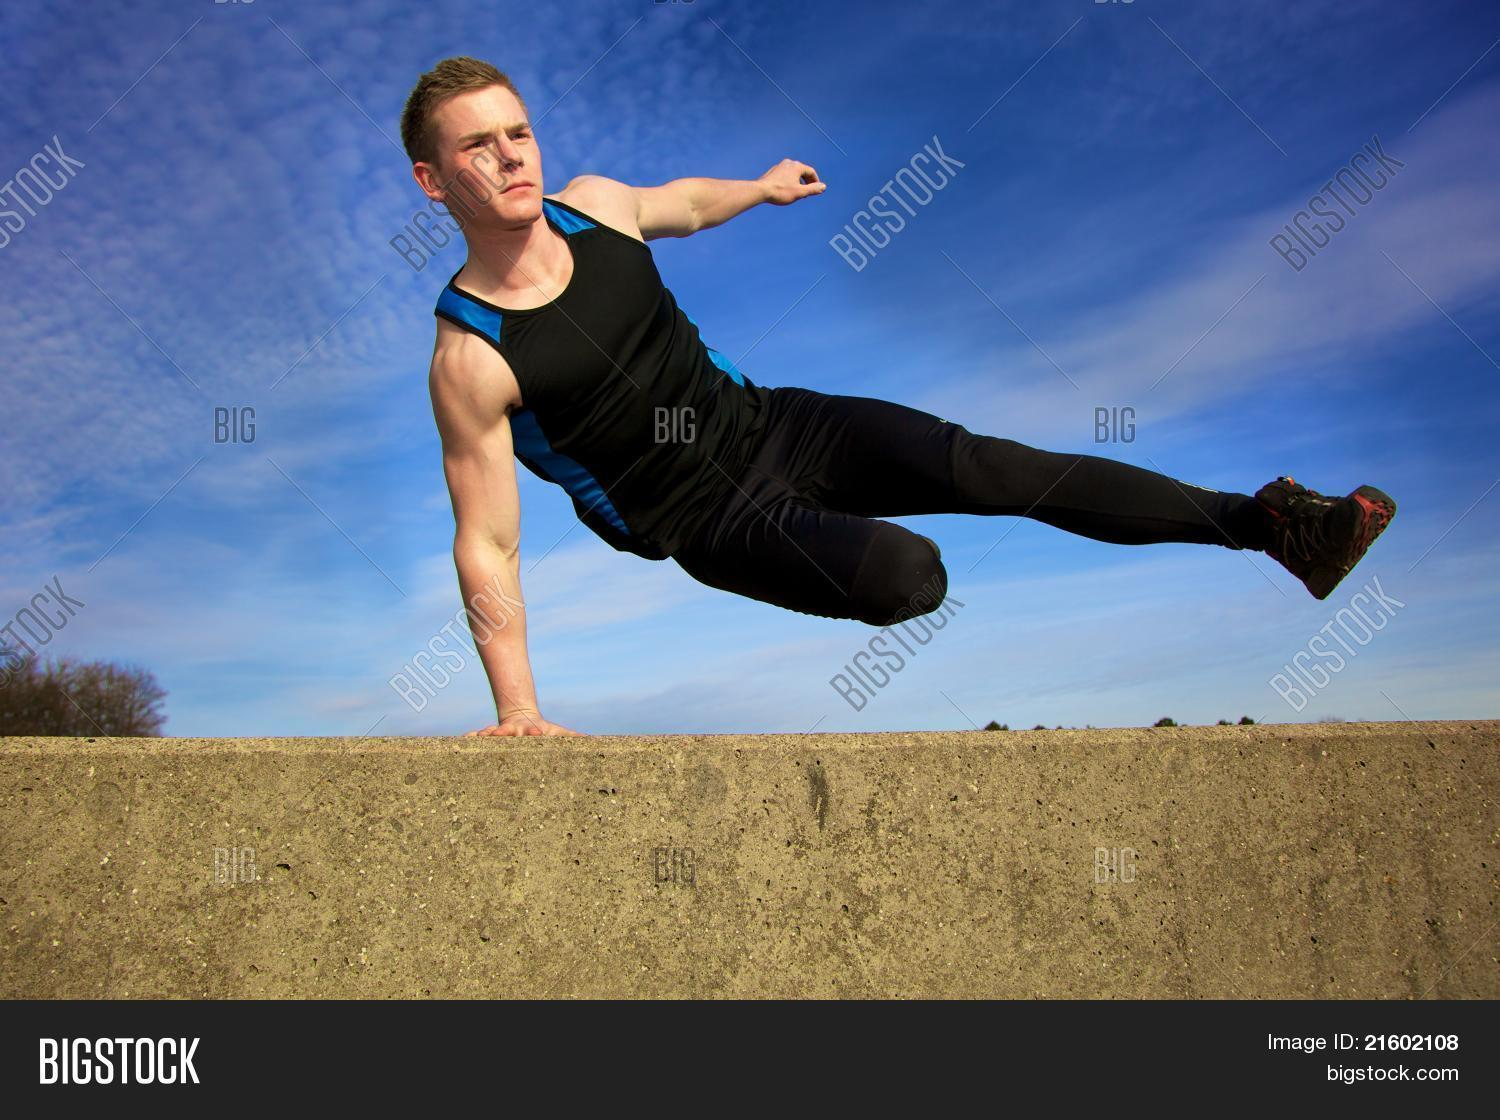 Parkour Wall Jump Www Imgkid Com The Image Kid Has It